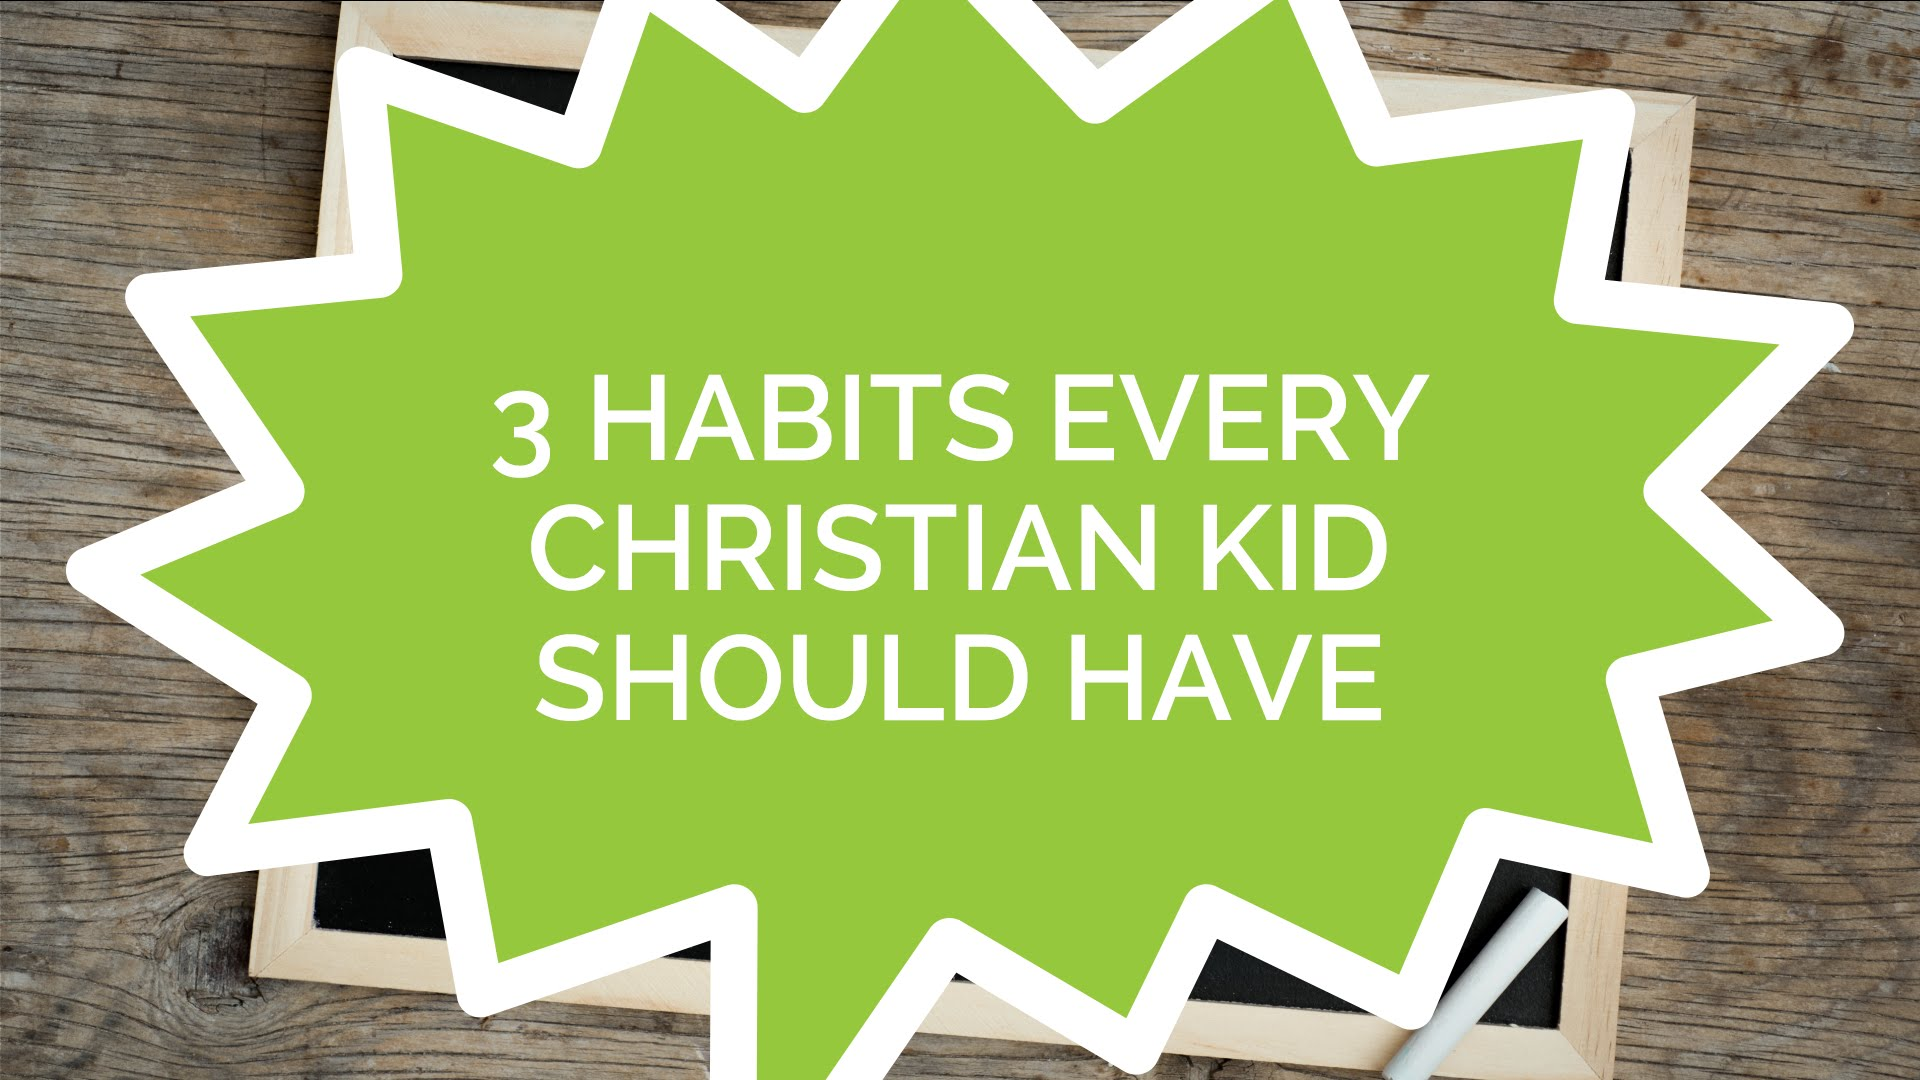 3 Habits Every Christian Kid Should Have (Kids)